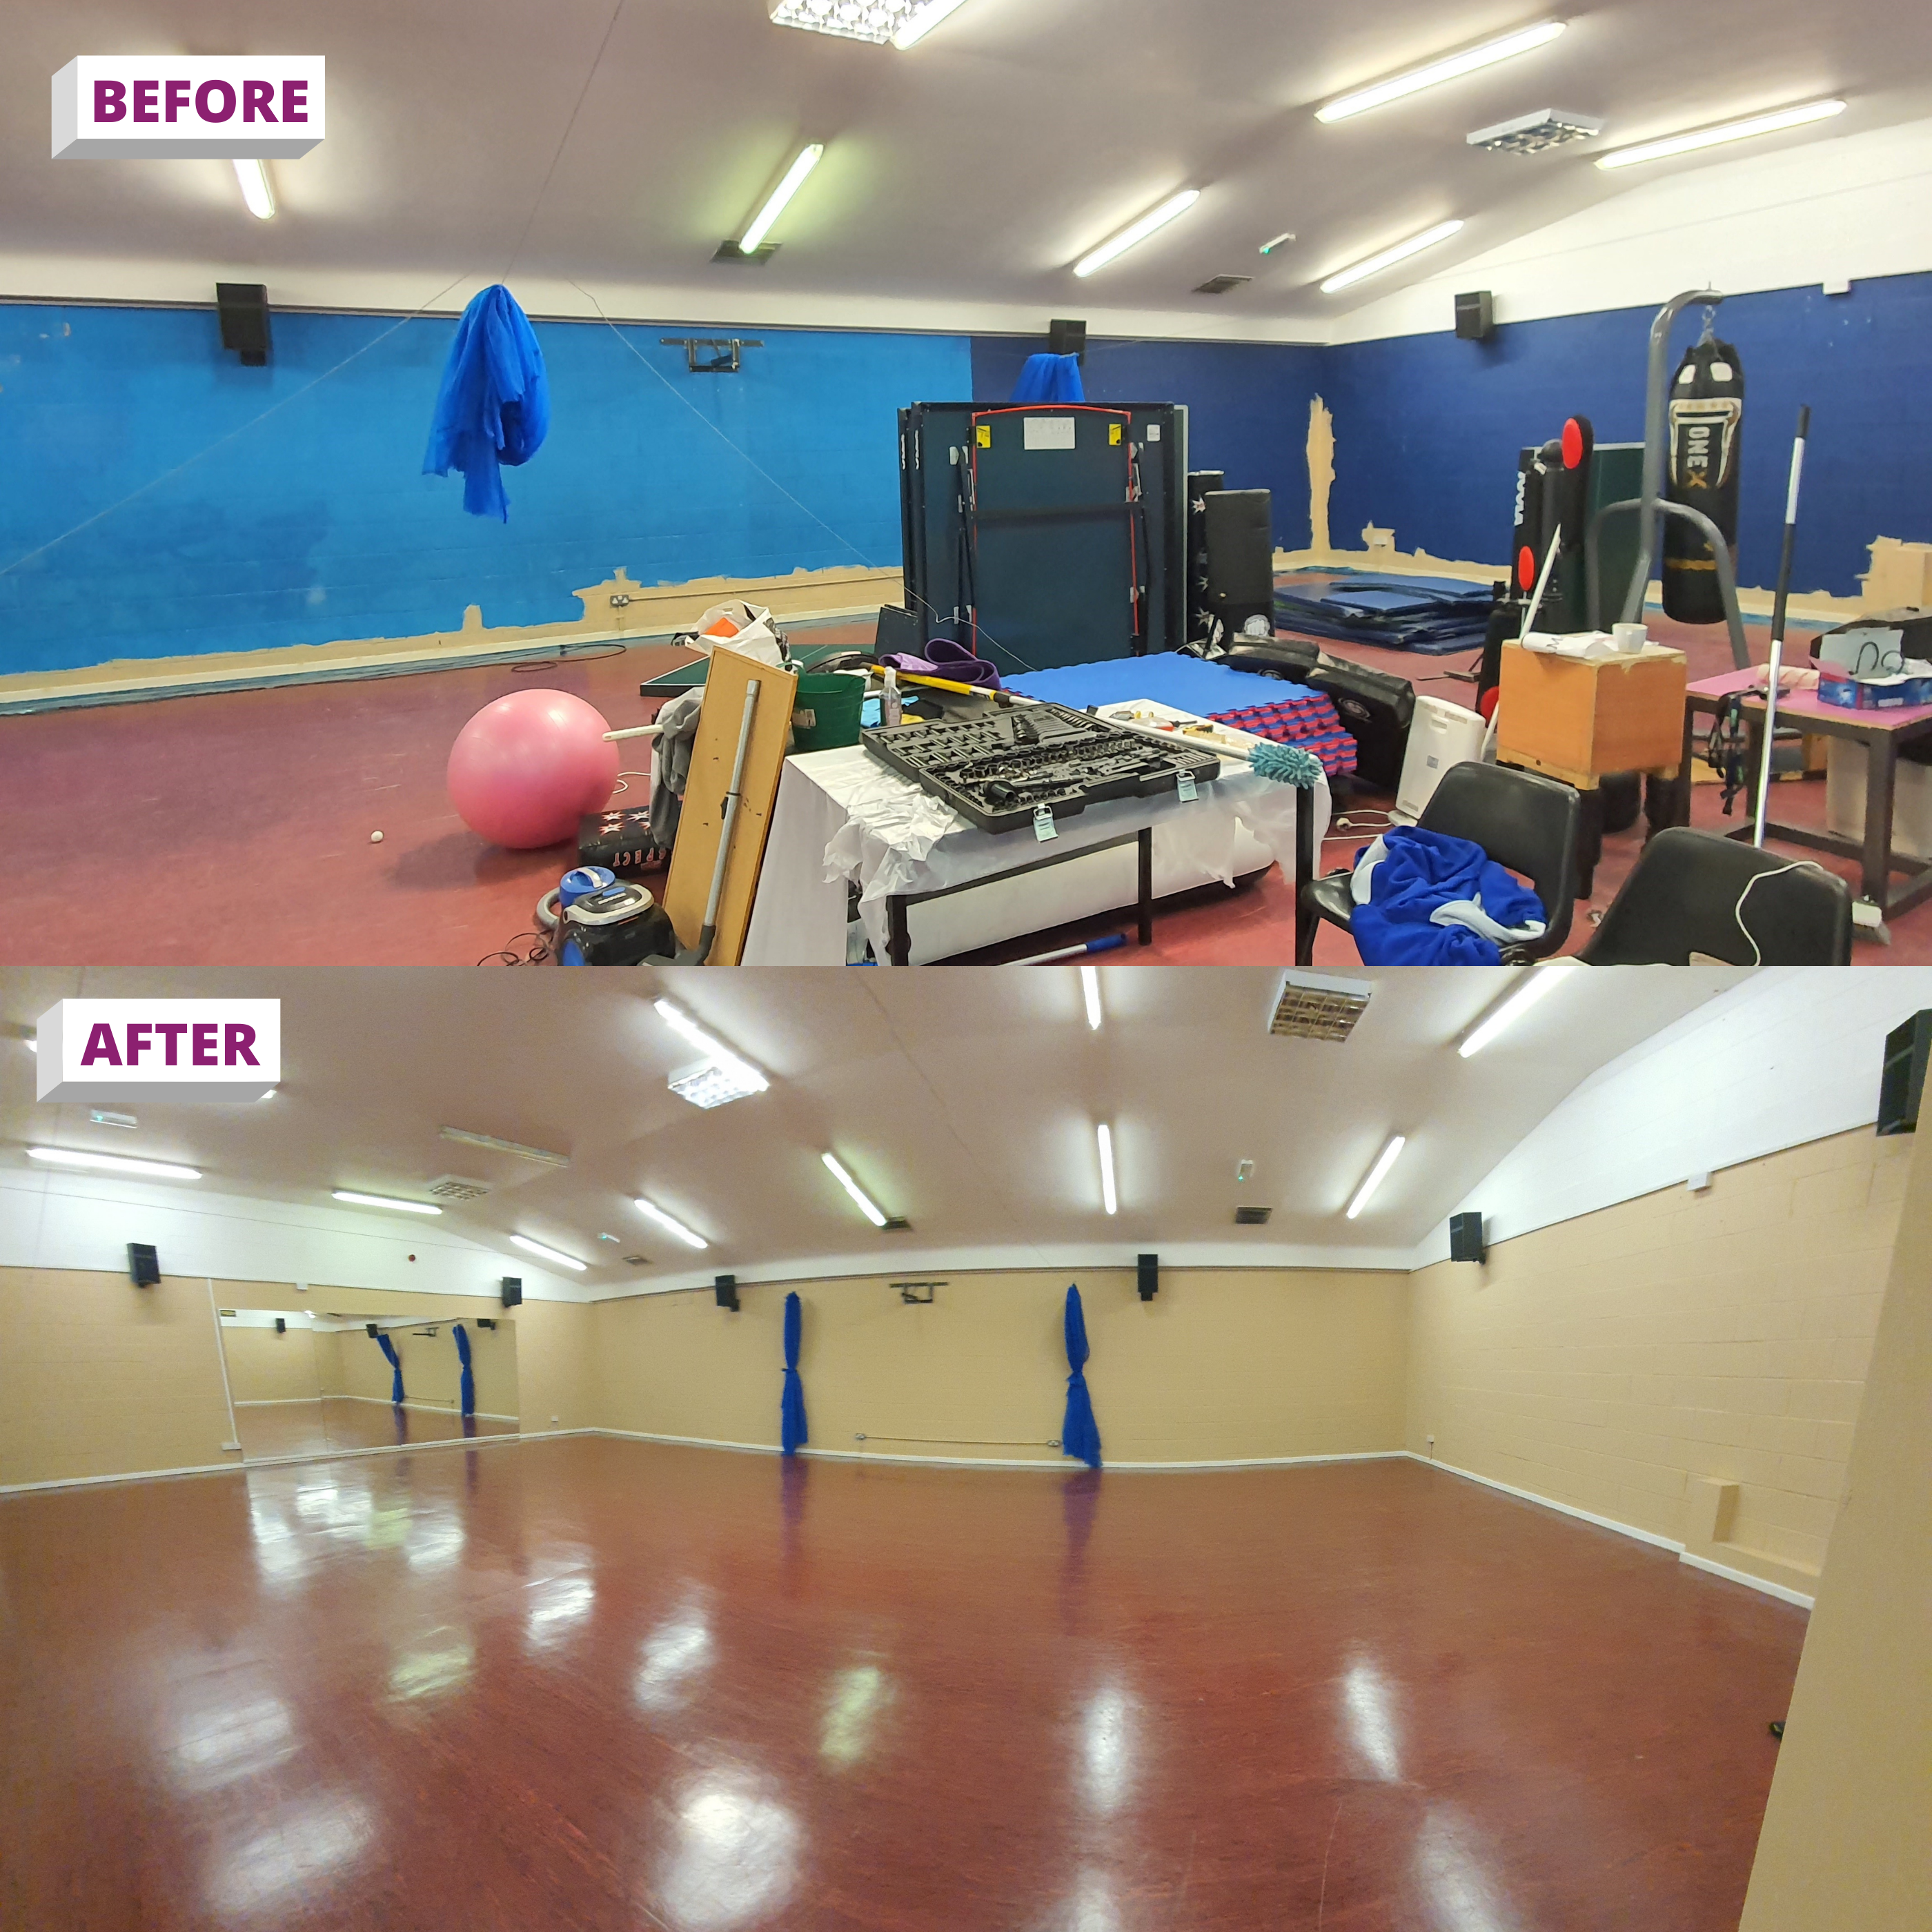 Before vs After photo of Widnes RUFC club using ReColour paint